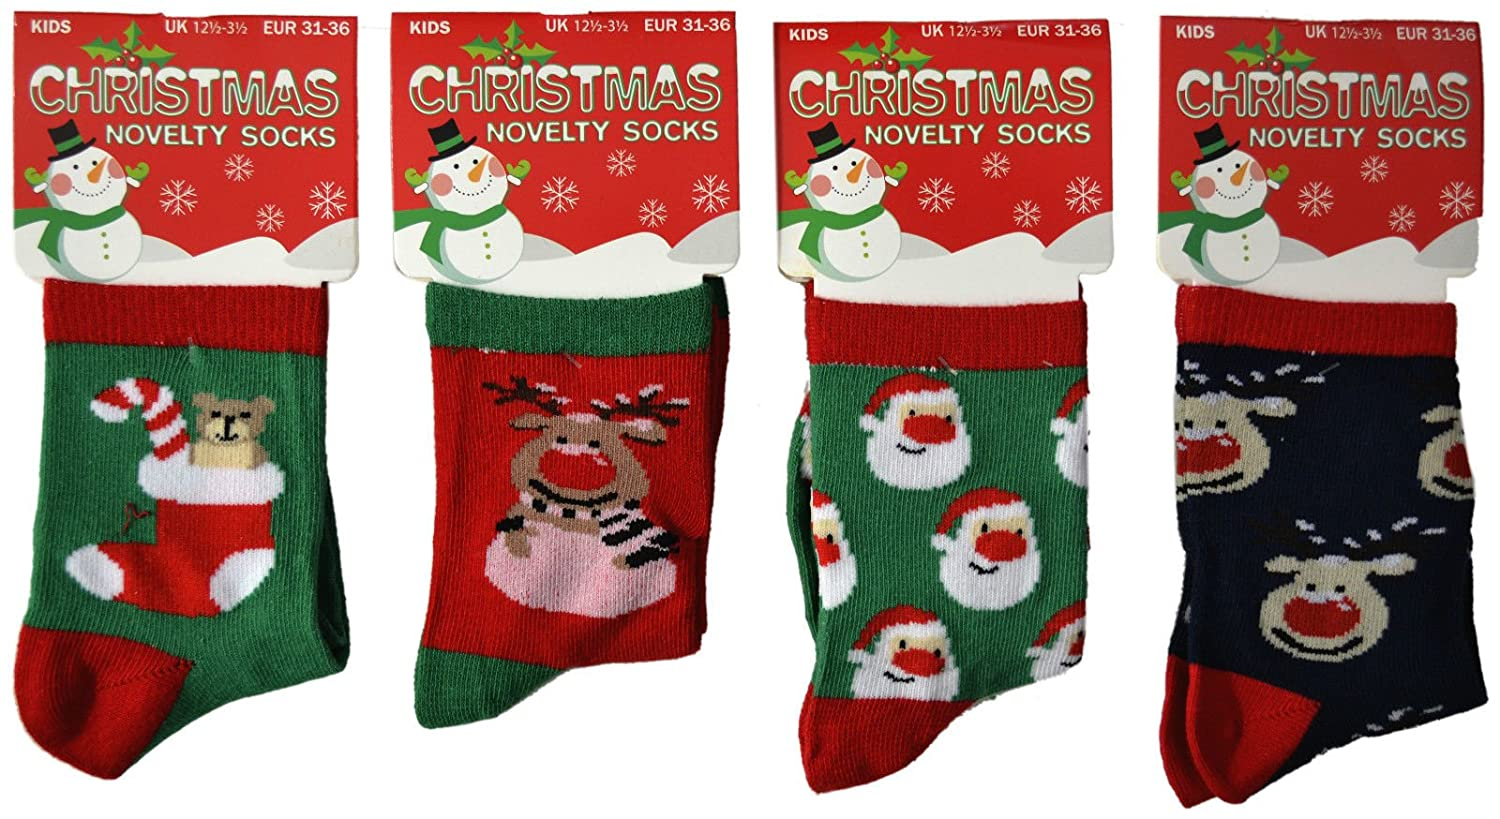 4-6 UK] 4 PAIR MULTIPACK CHILDRENS BOYS GIRLS KIDS CHRISTMAS FESTIVE ...